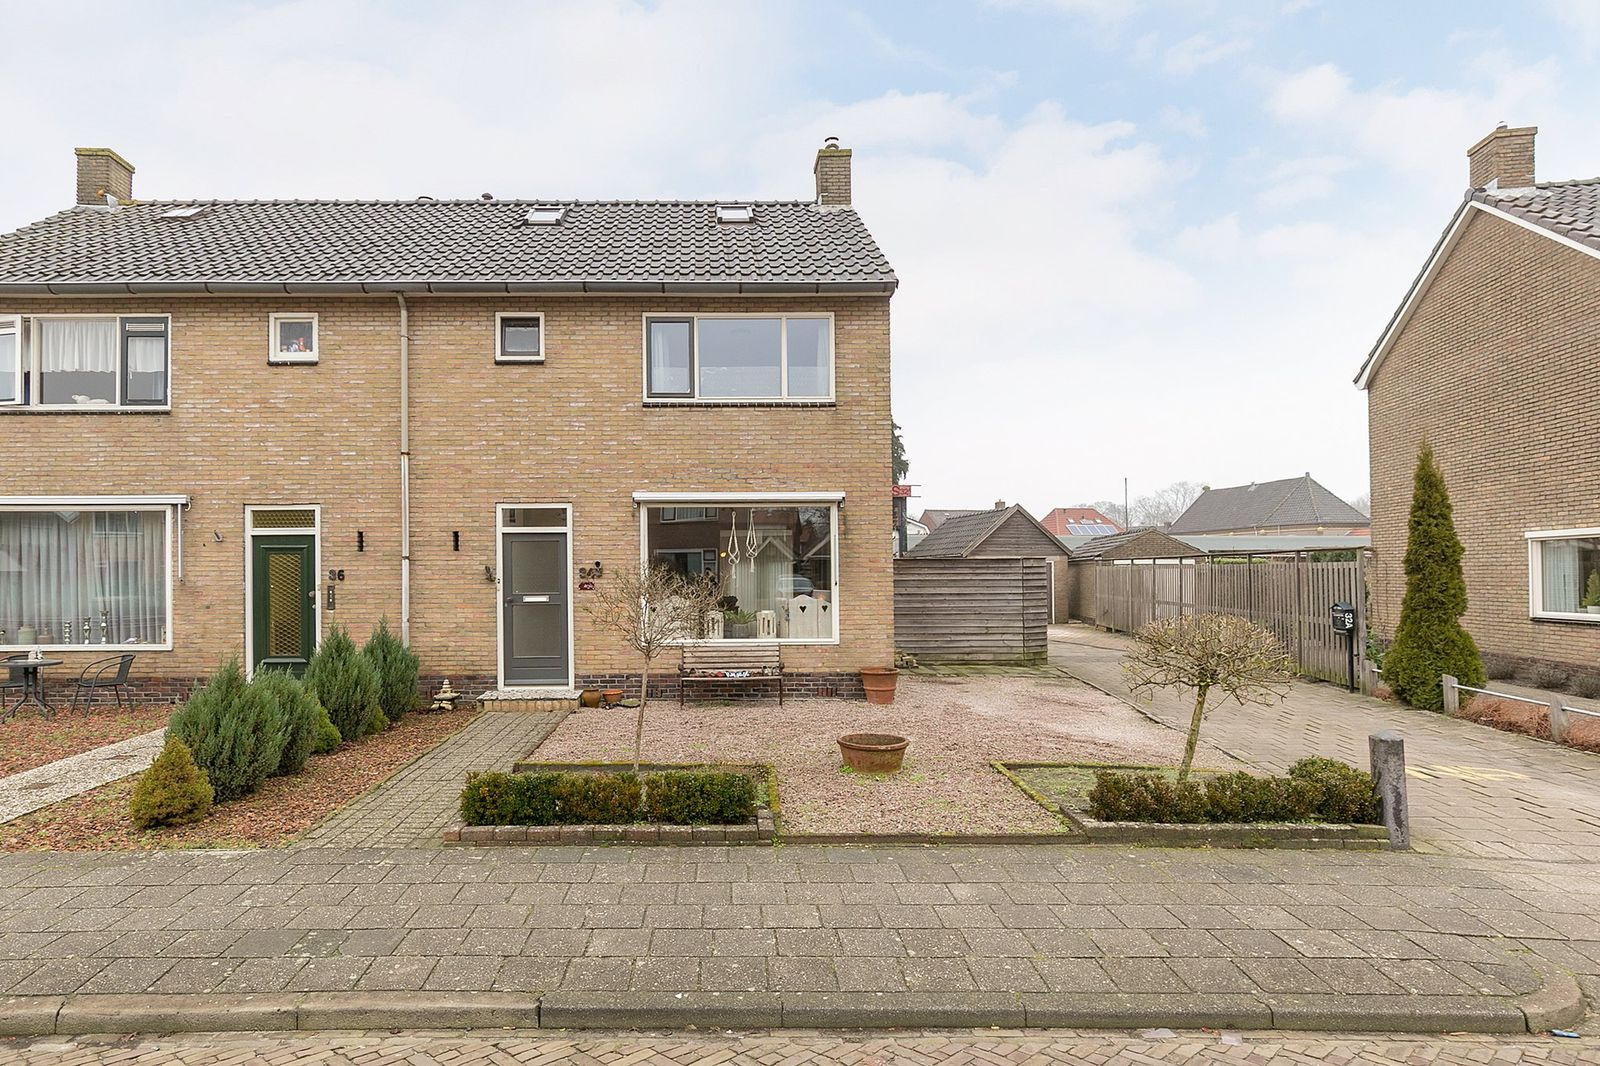 Beatrixstraat 34, Wolvega